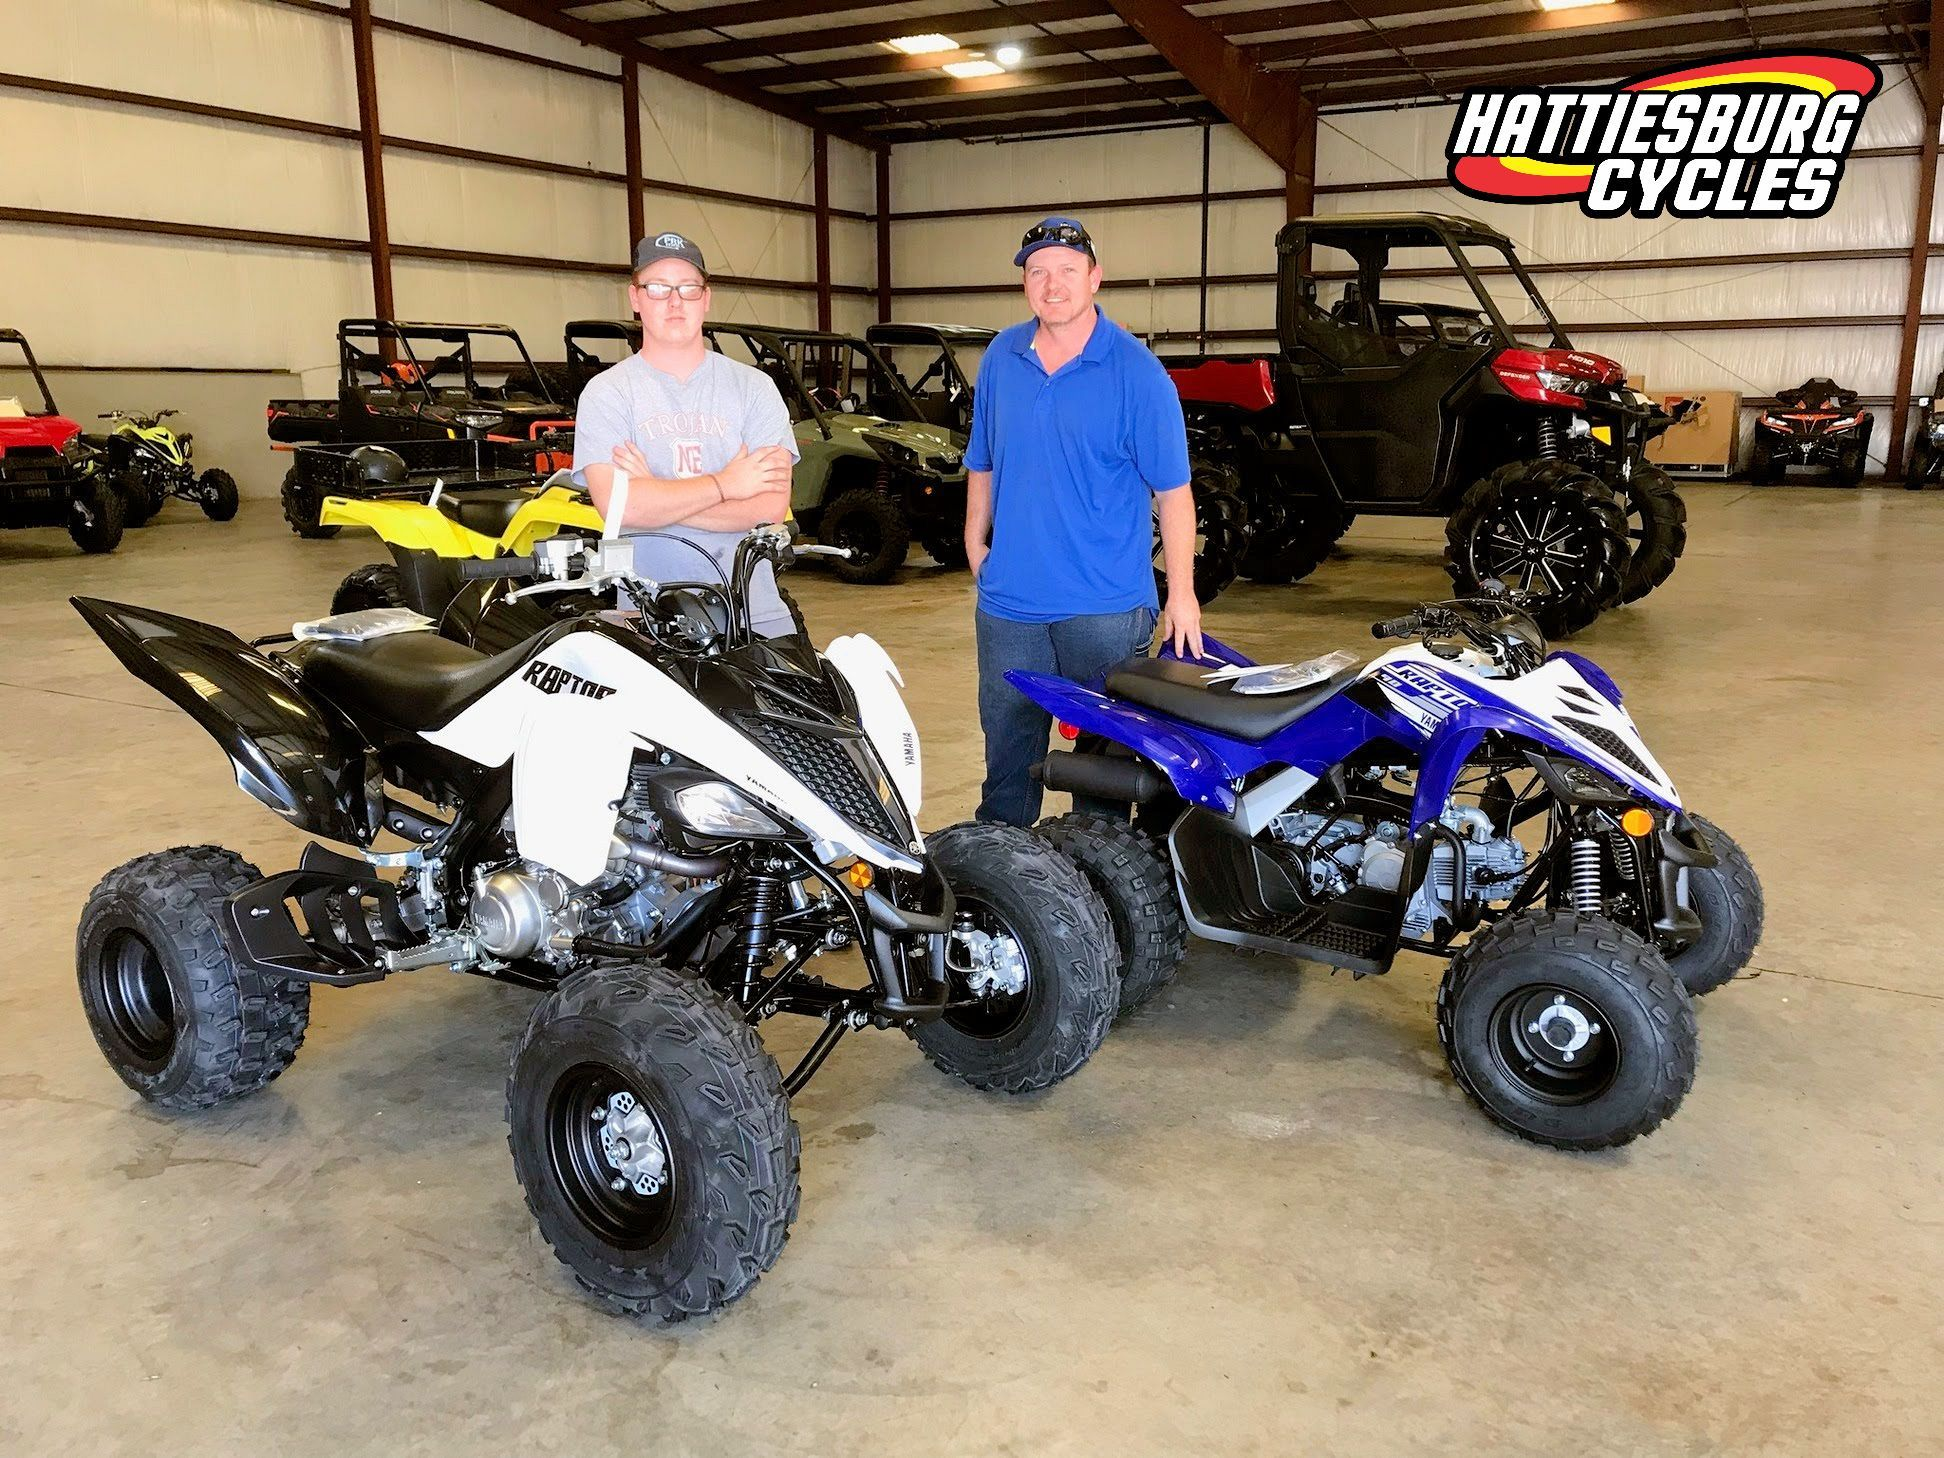 Congratulations To The Mosley Family From Lauderdale Ms For Purchasing A 2020 Yamaha Raptor 700 And A 2019 Yamaha Yamaha Raptor 700 Hattiesburg Monster Trucks